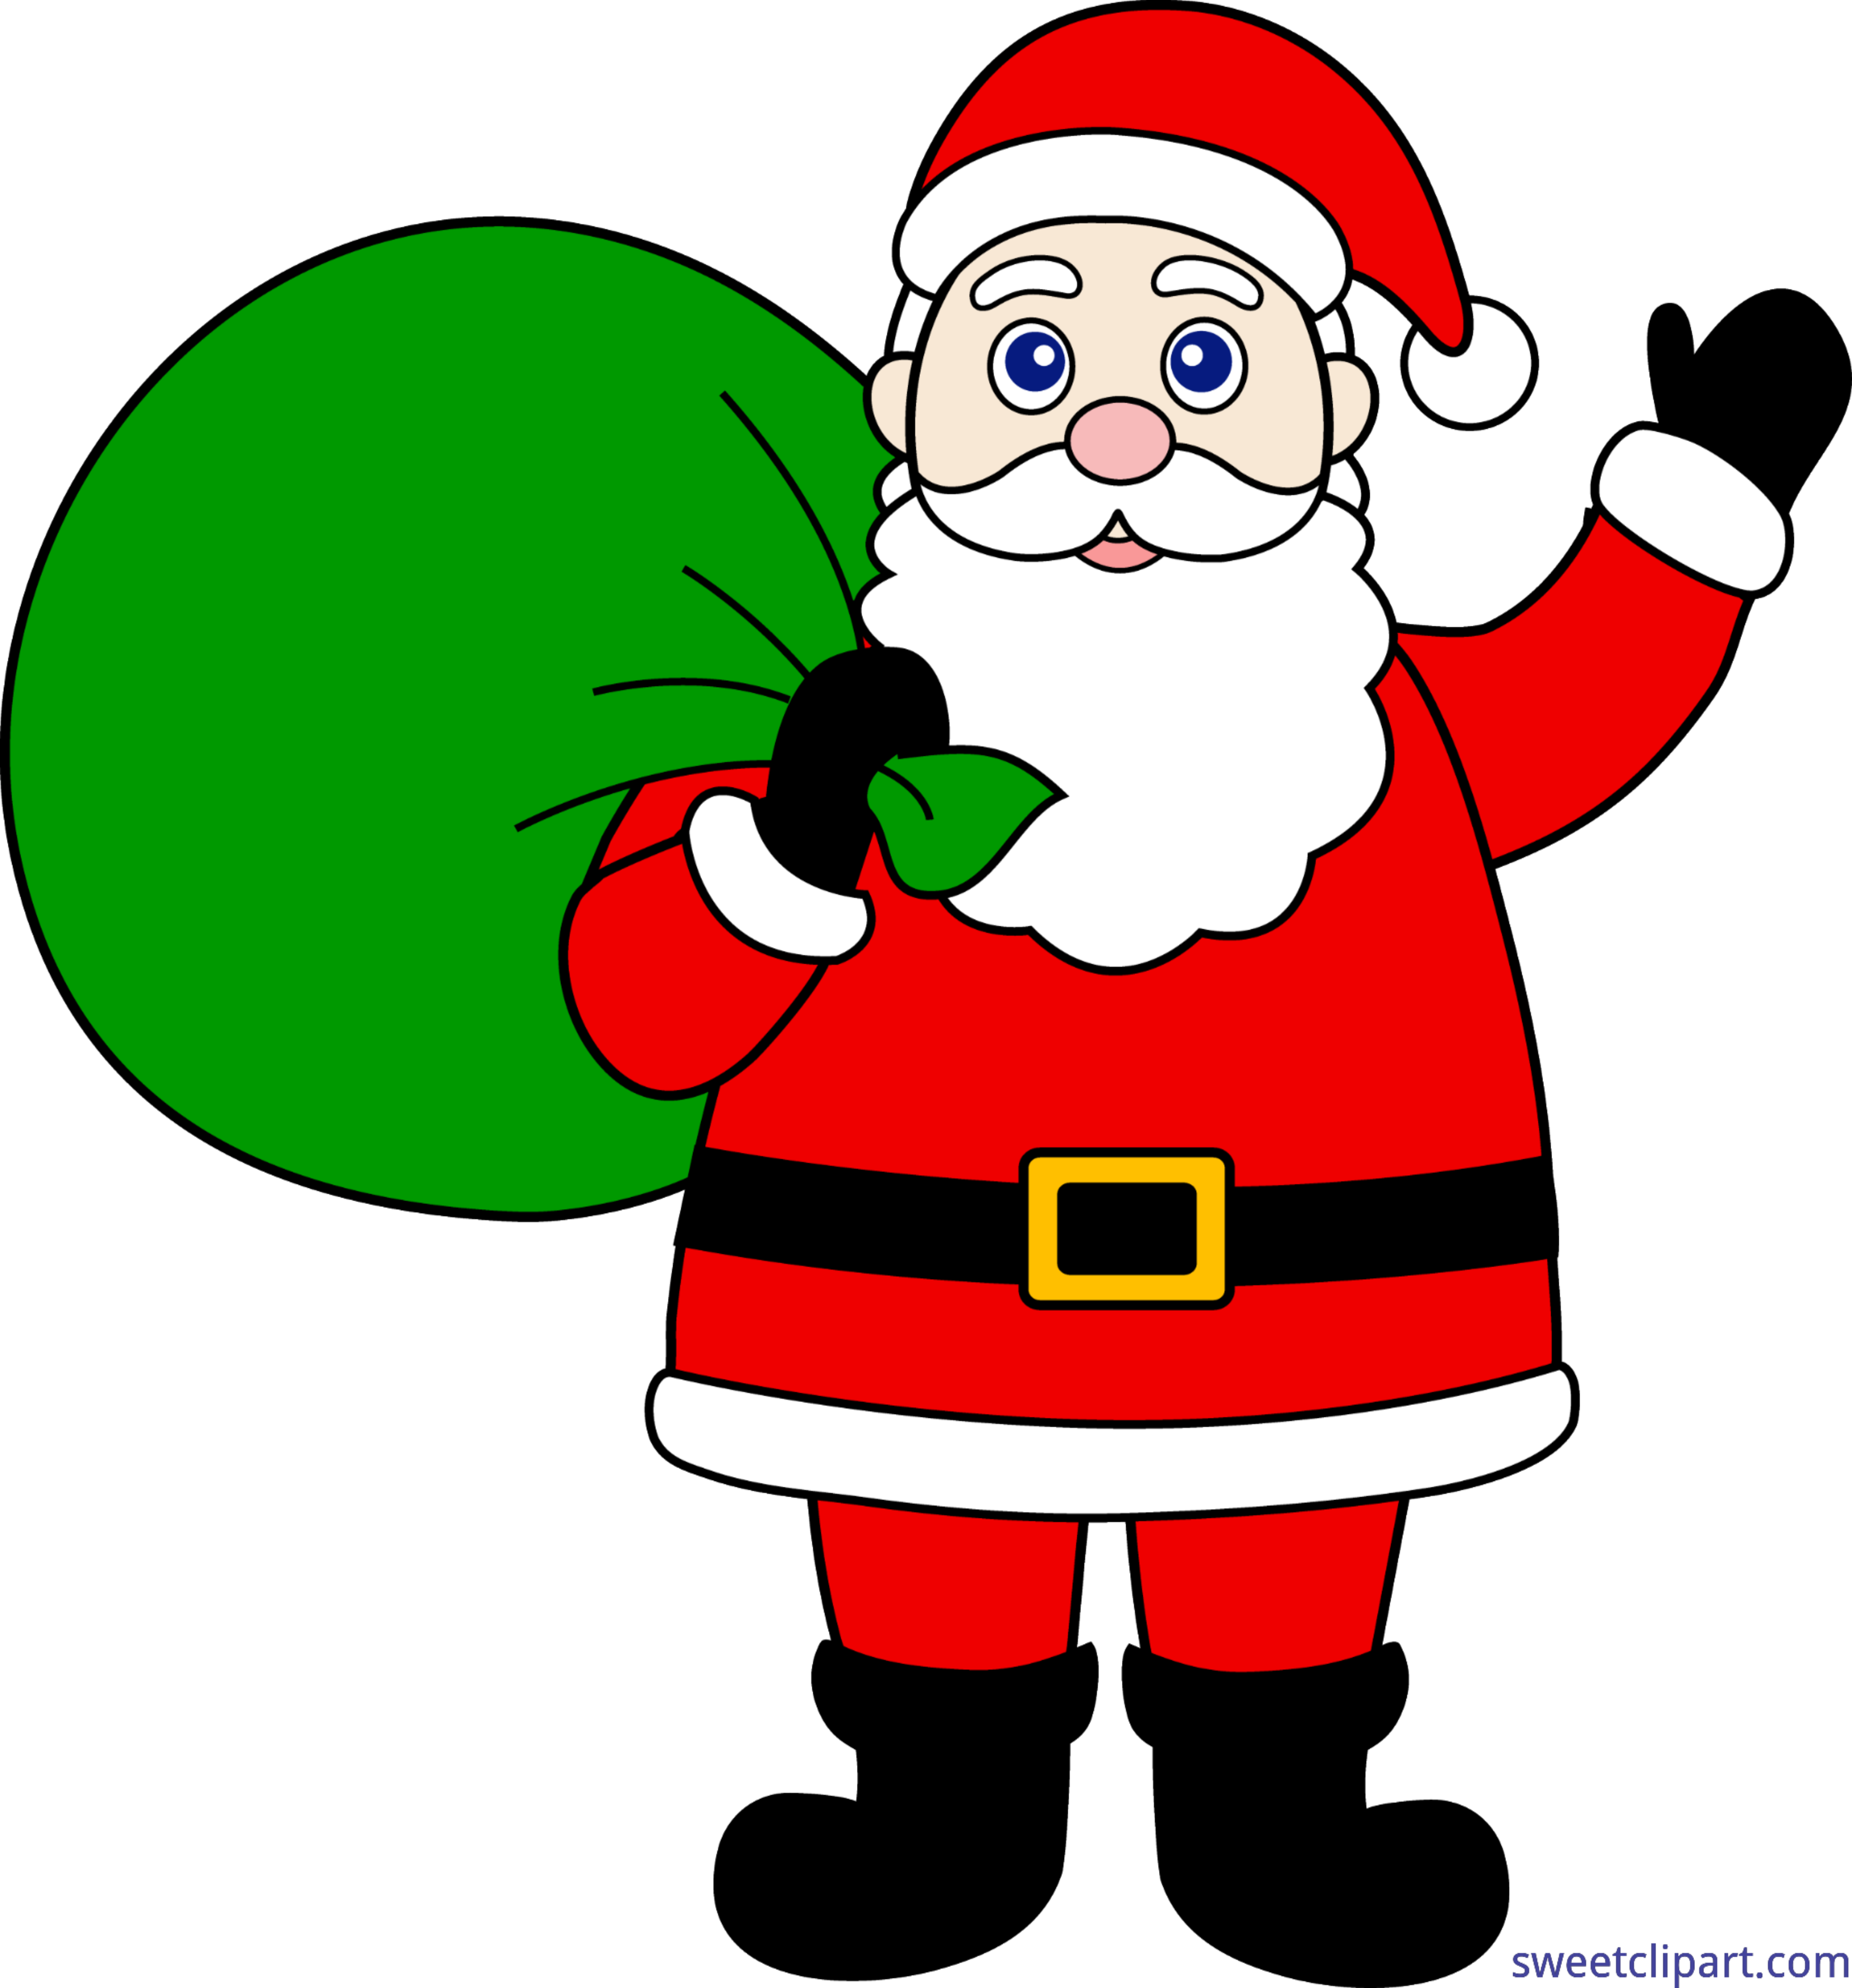 Clipart picture of santa claus picture freeuse library Santa Claus Clip Art - Sweet Clip Art picture freeuse library